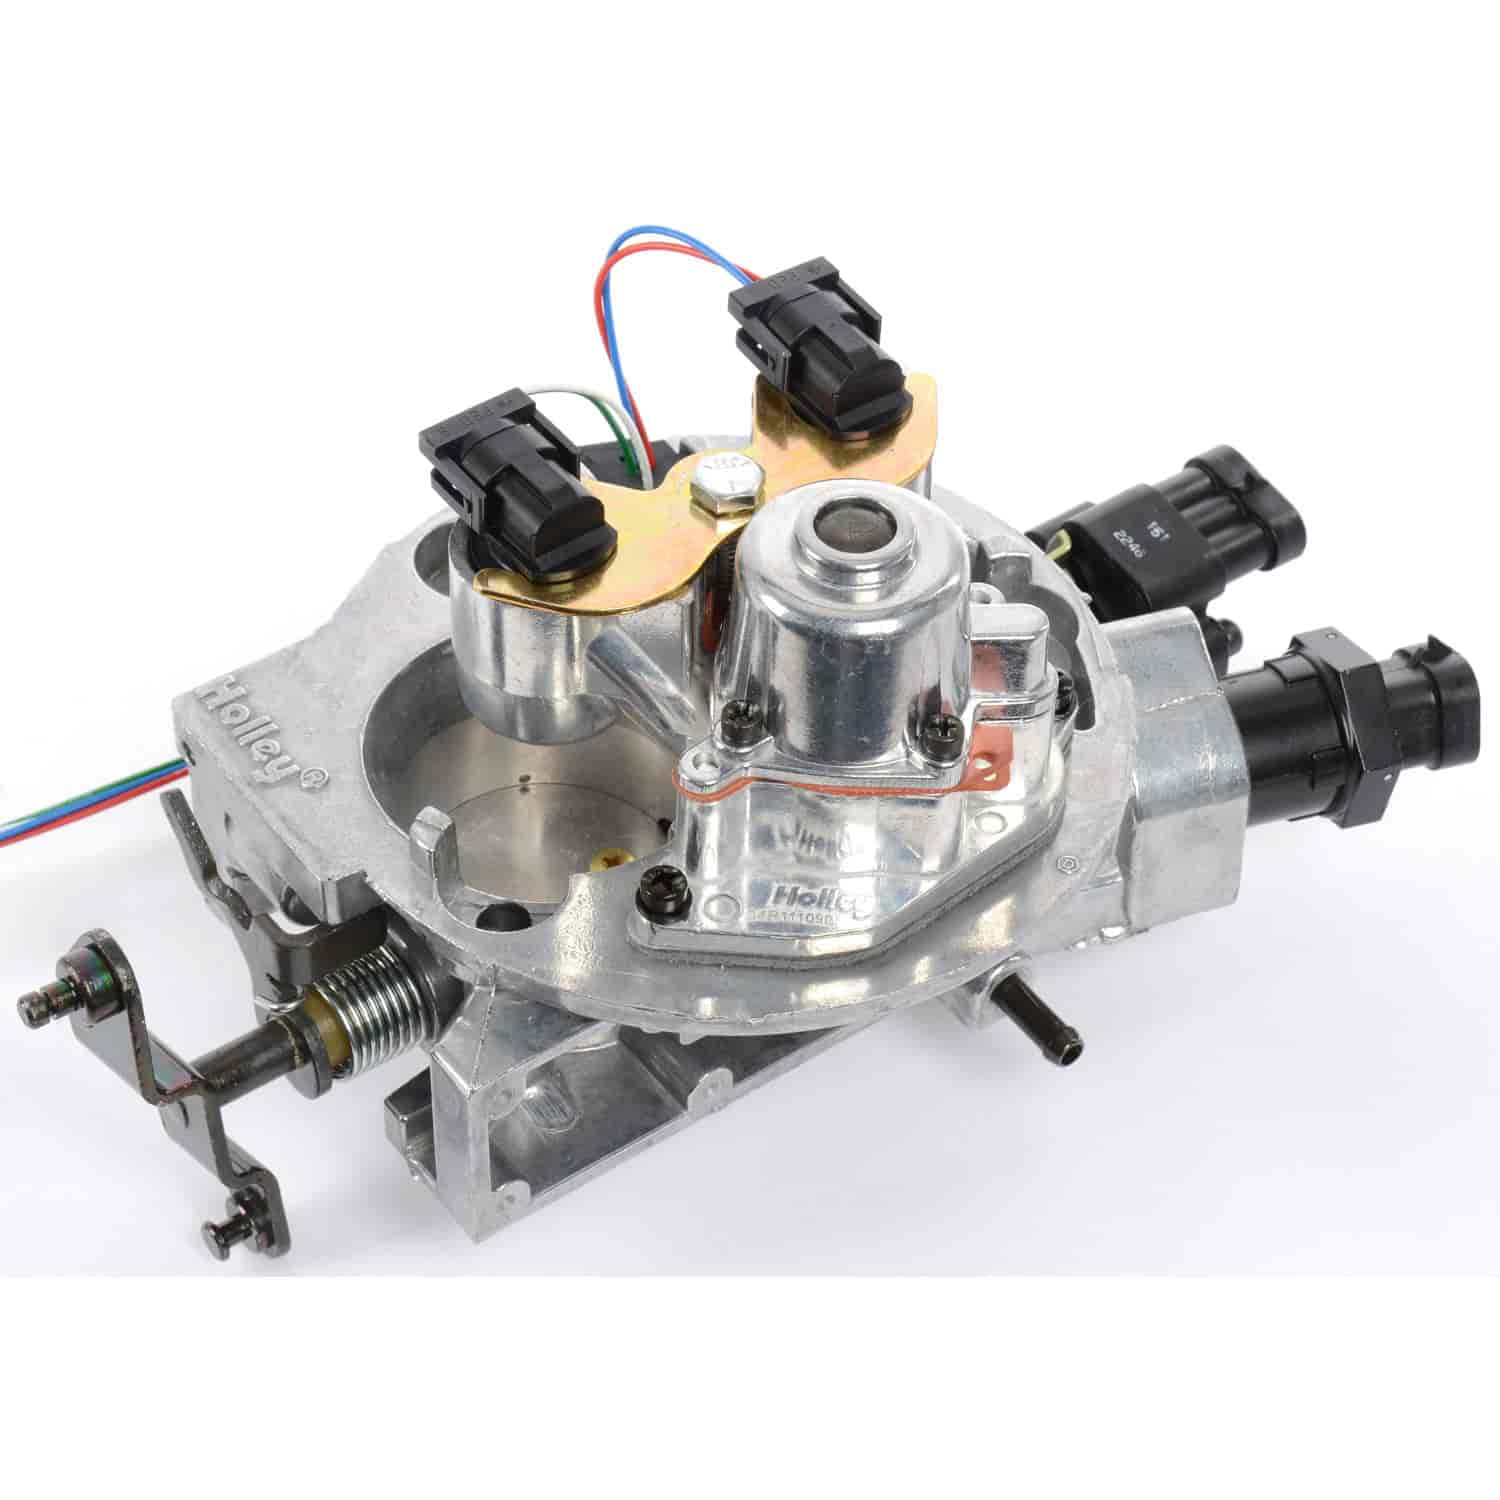 hight resolution of holley 502 6 replacement 670 cfm tbi 1987 89 gm 5 7l v8 truck jegs carb to tbi wiring harness kit